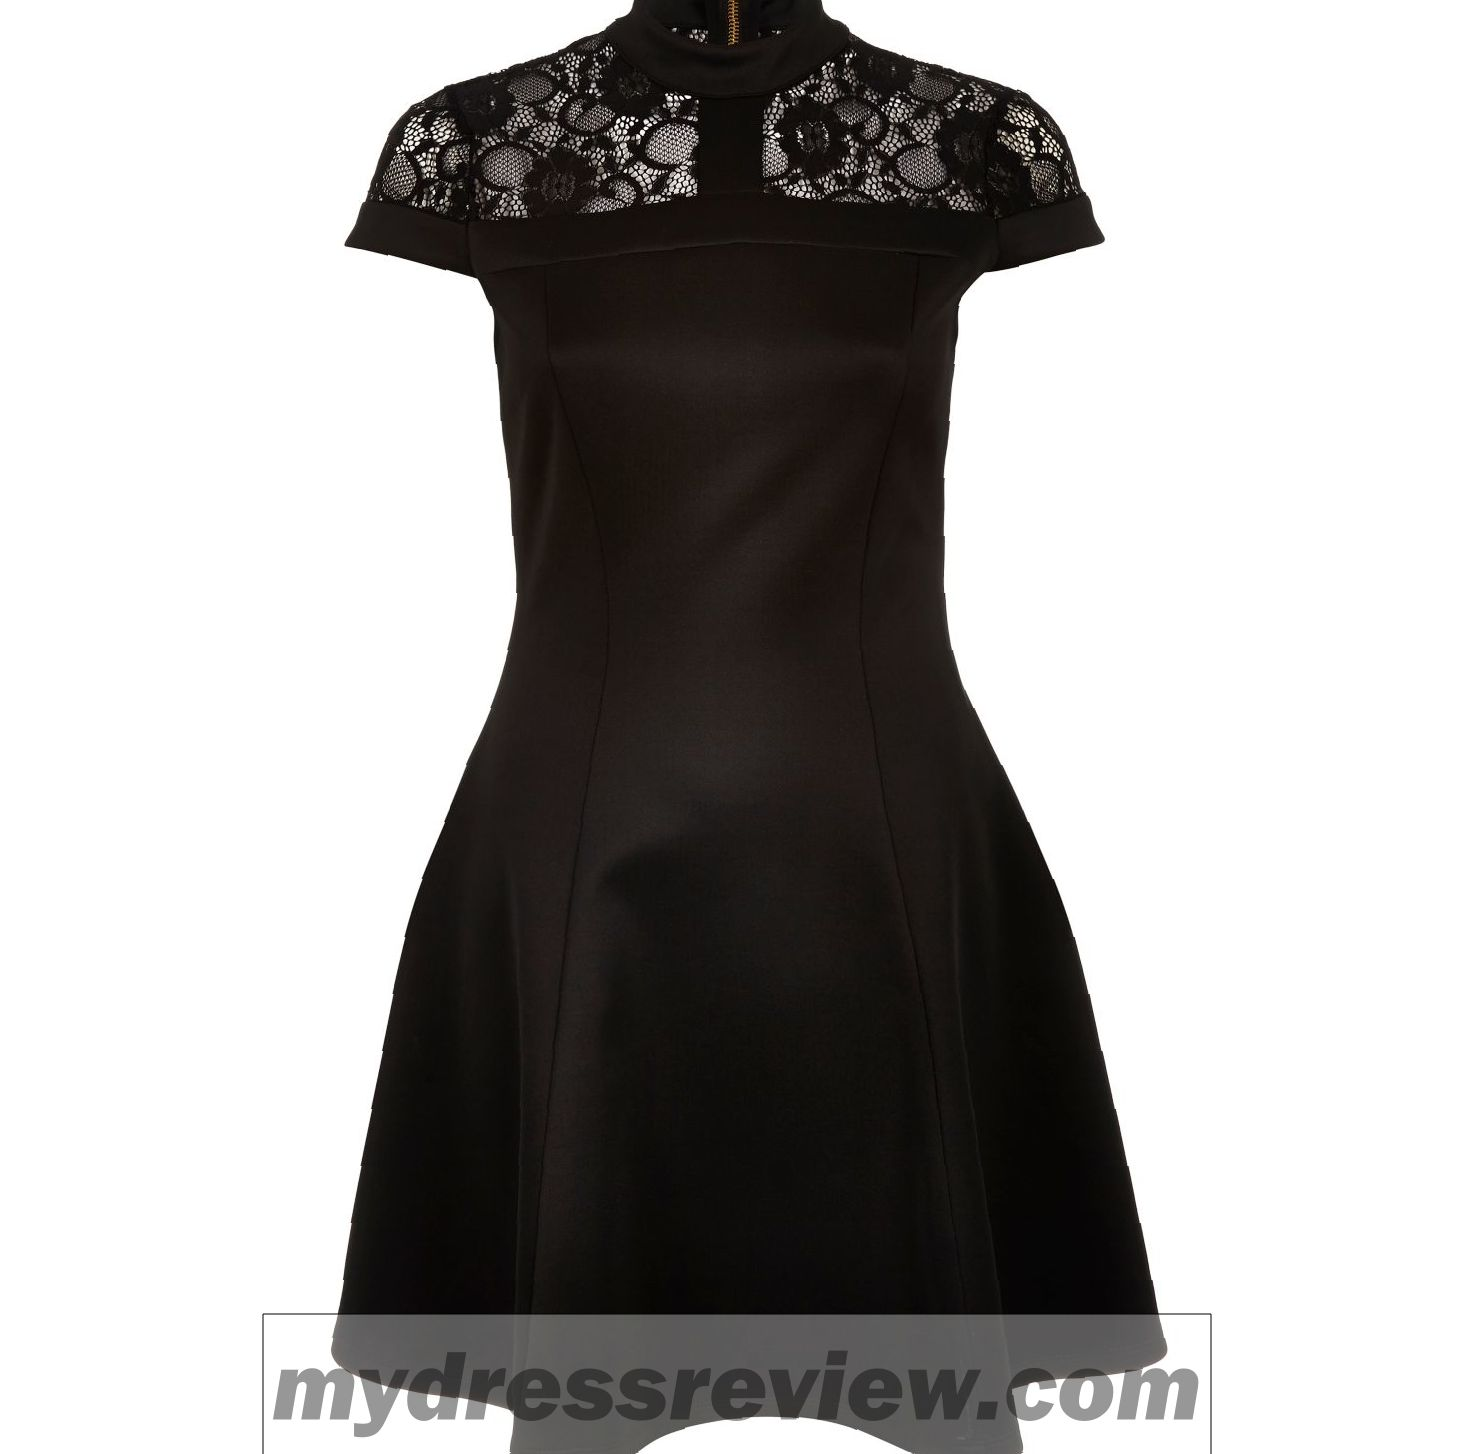 Black Lace River Island Dress And Top 10 Ideas